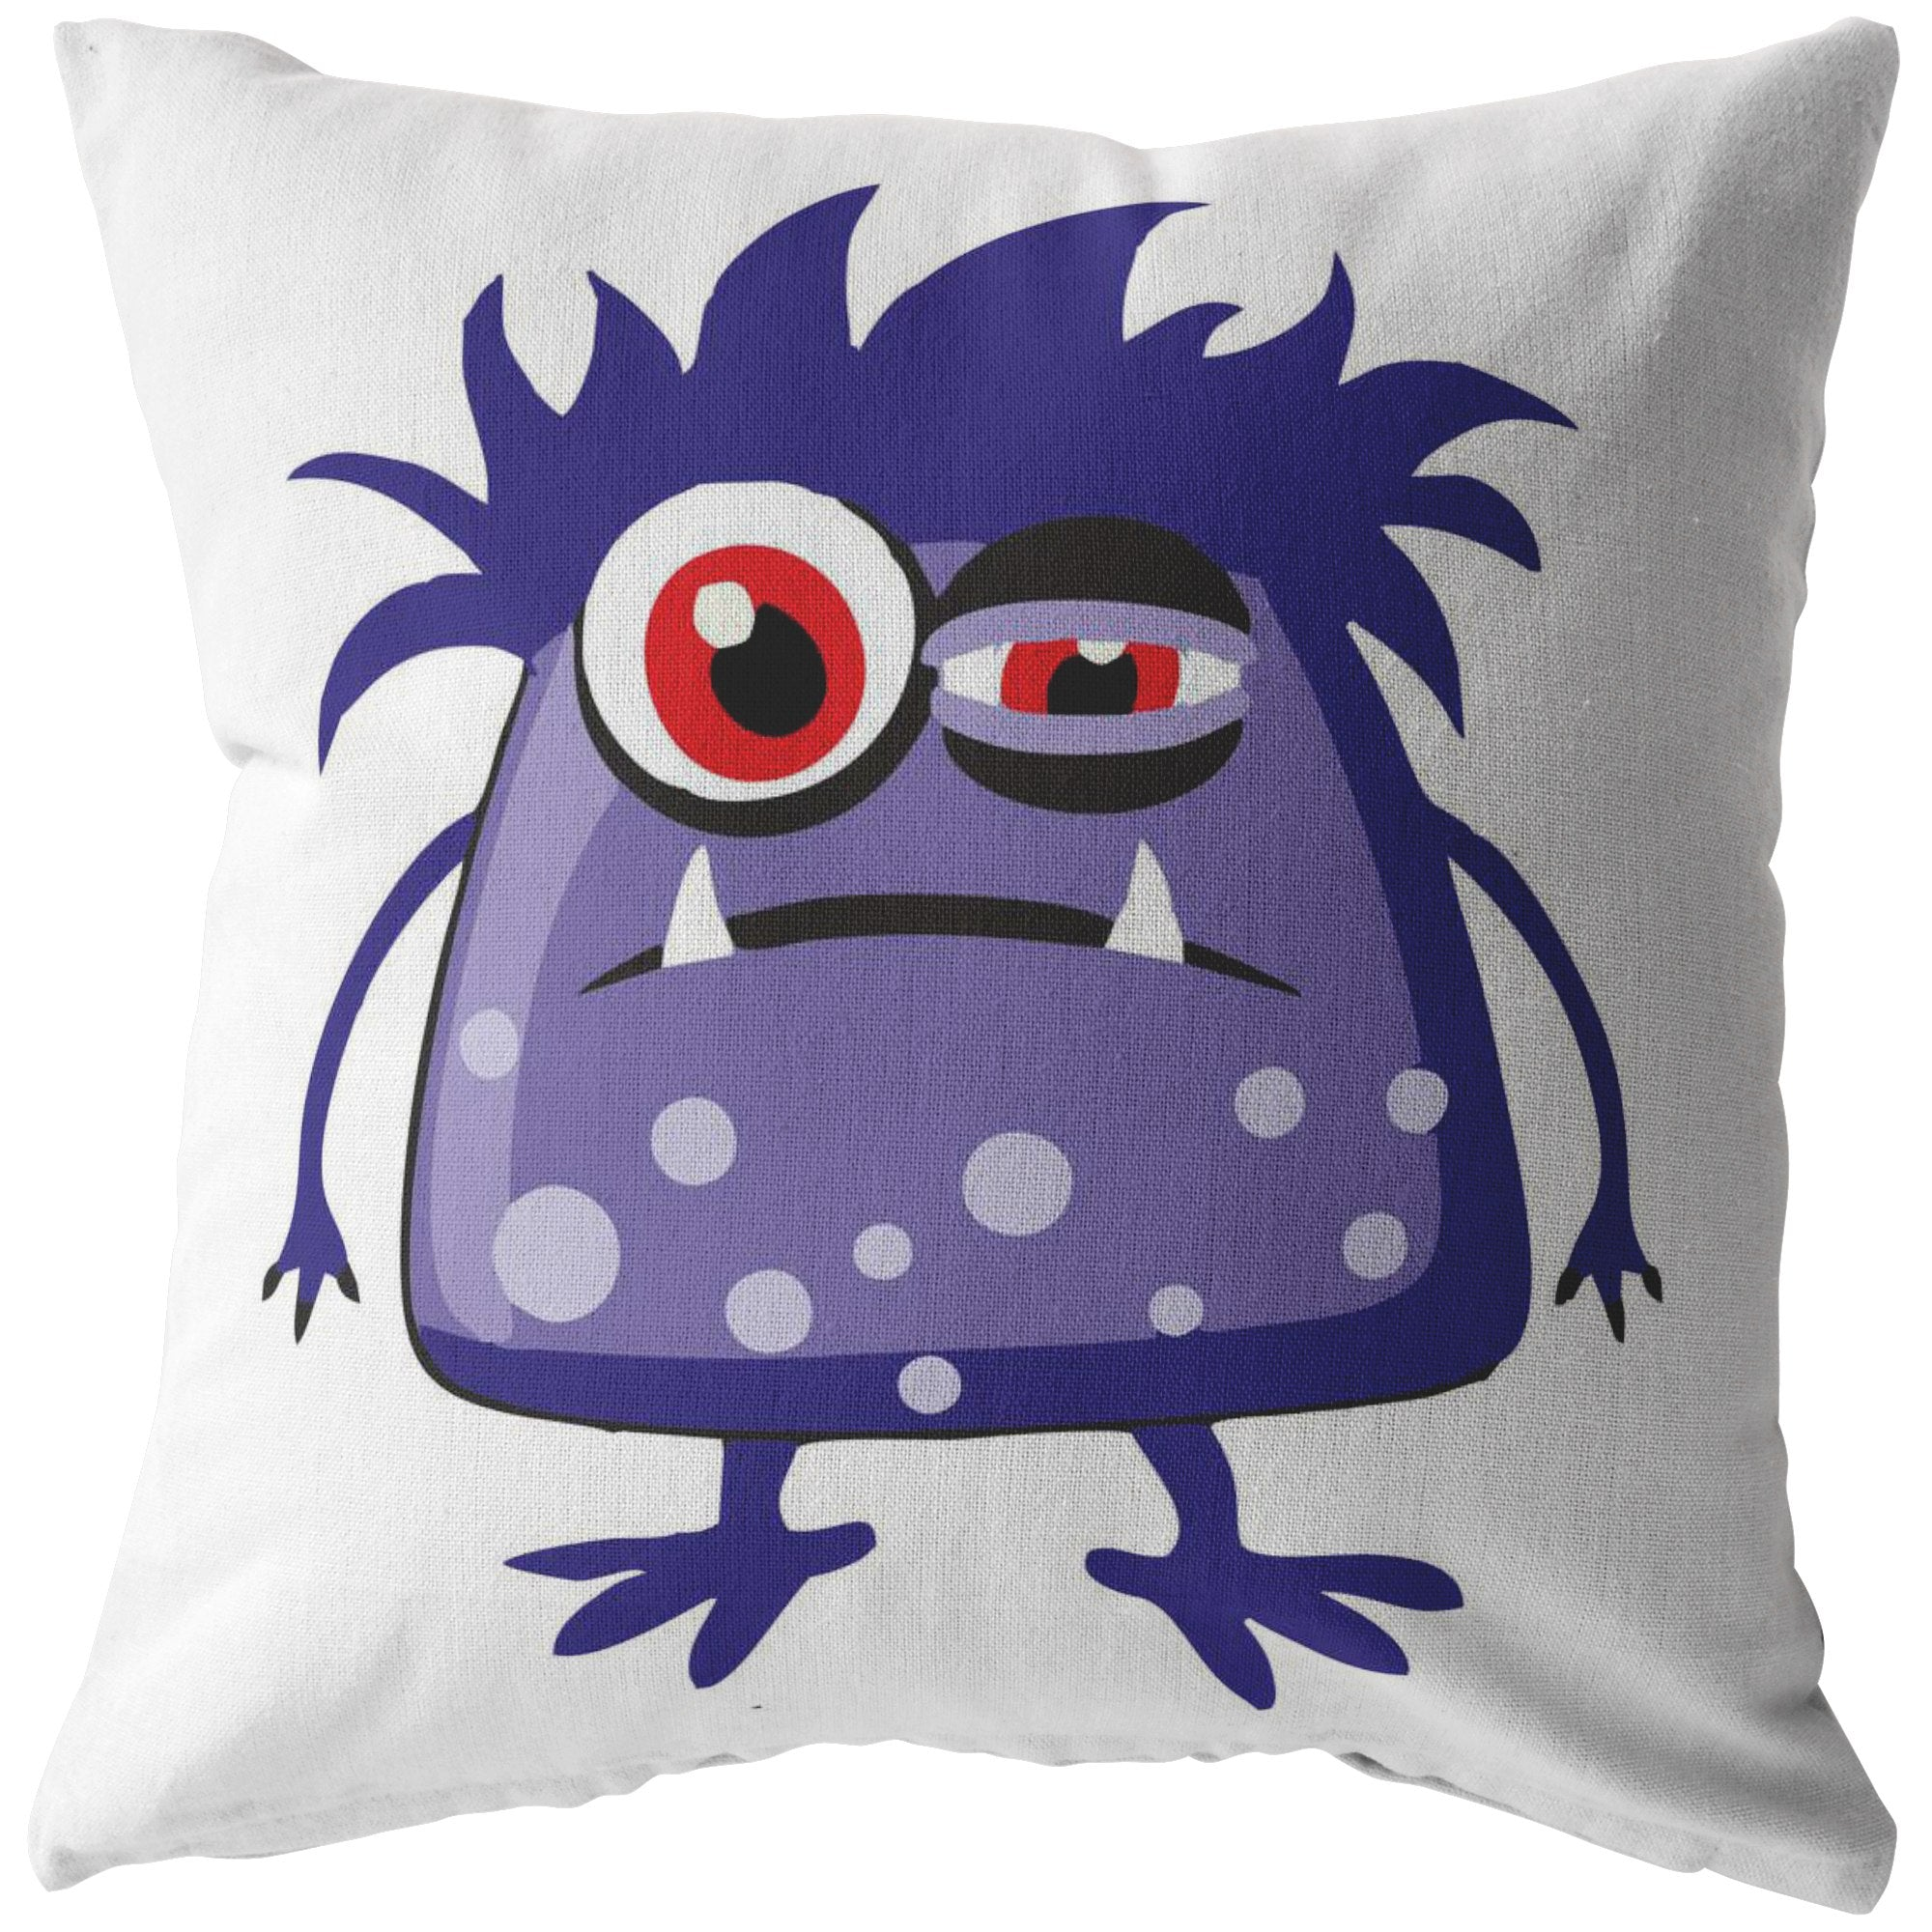 Chronic Fatigue Monster Pillow - The Unchargeables